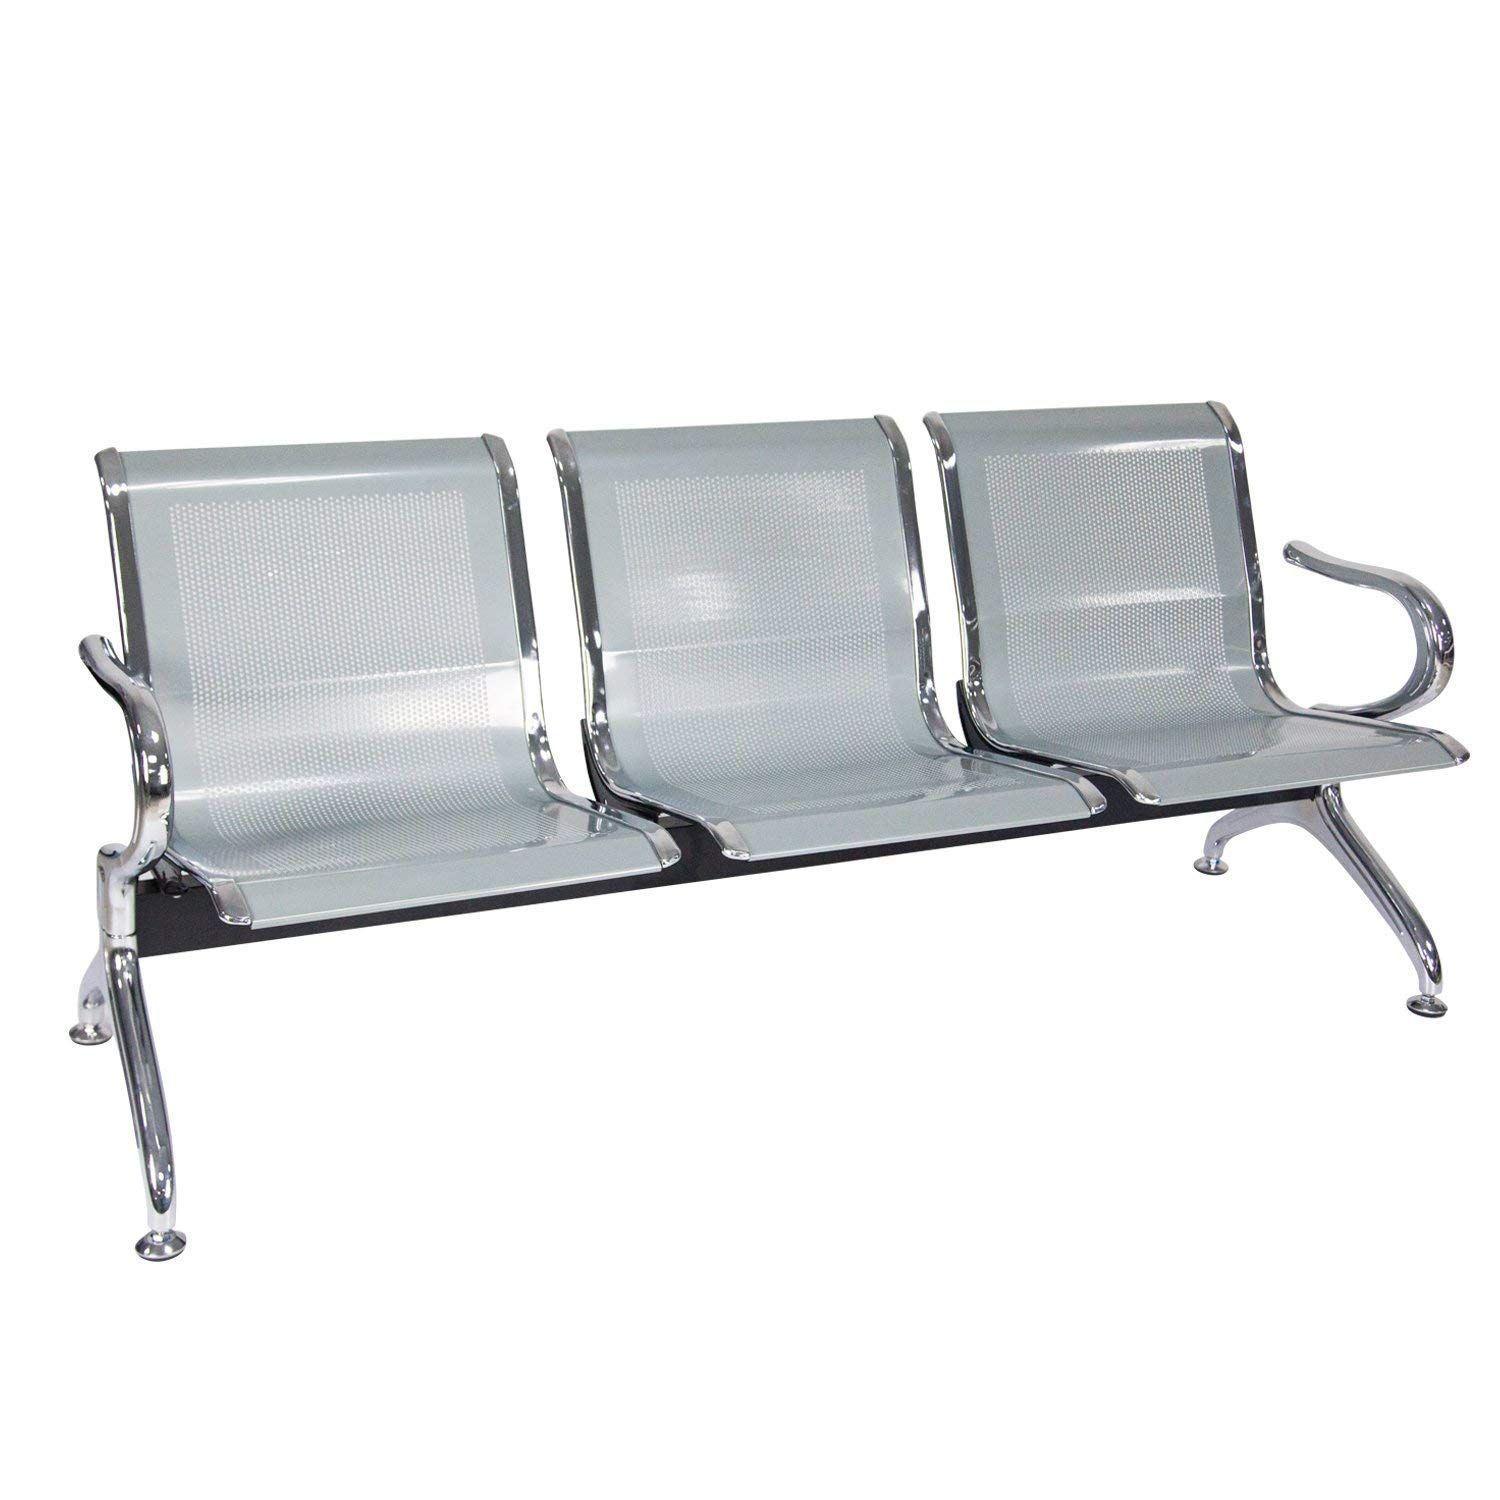 Airport Office Reception Waiting Chair Bench Guest Chair Room Garden Salon Barber Bench by Kinbor